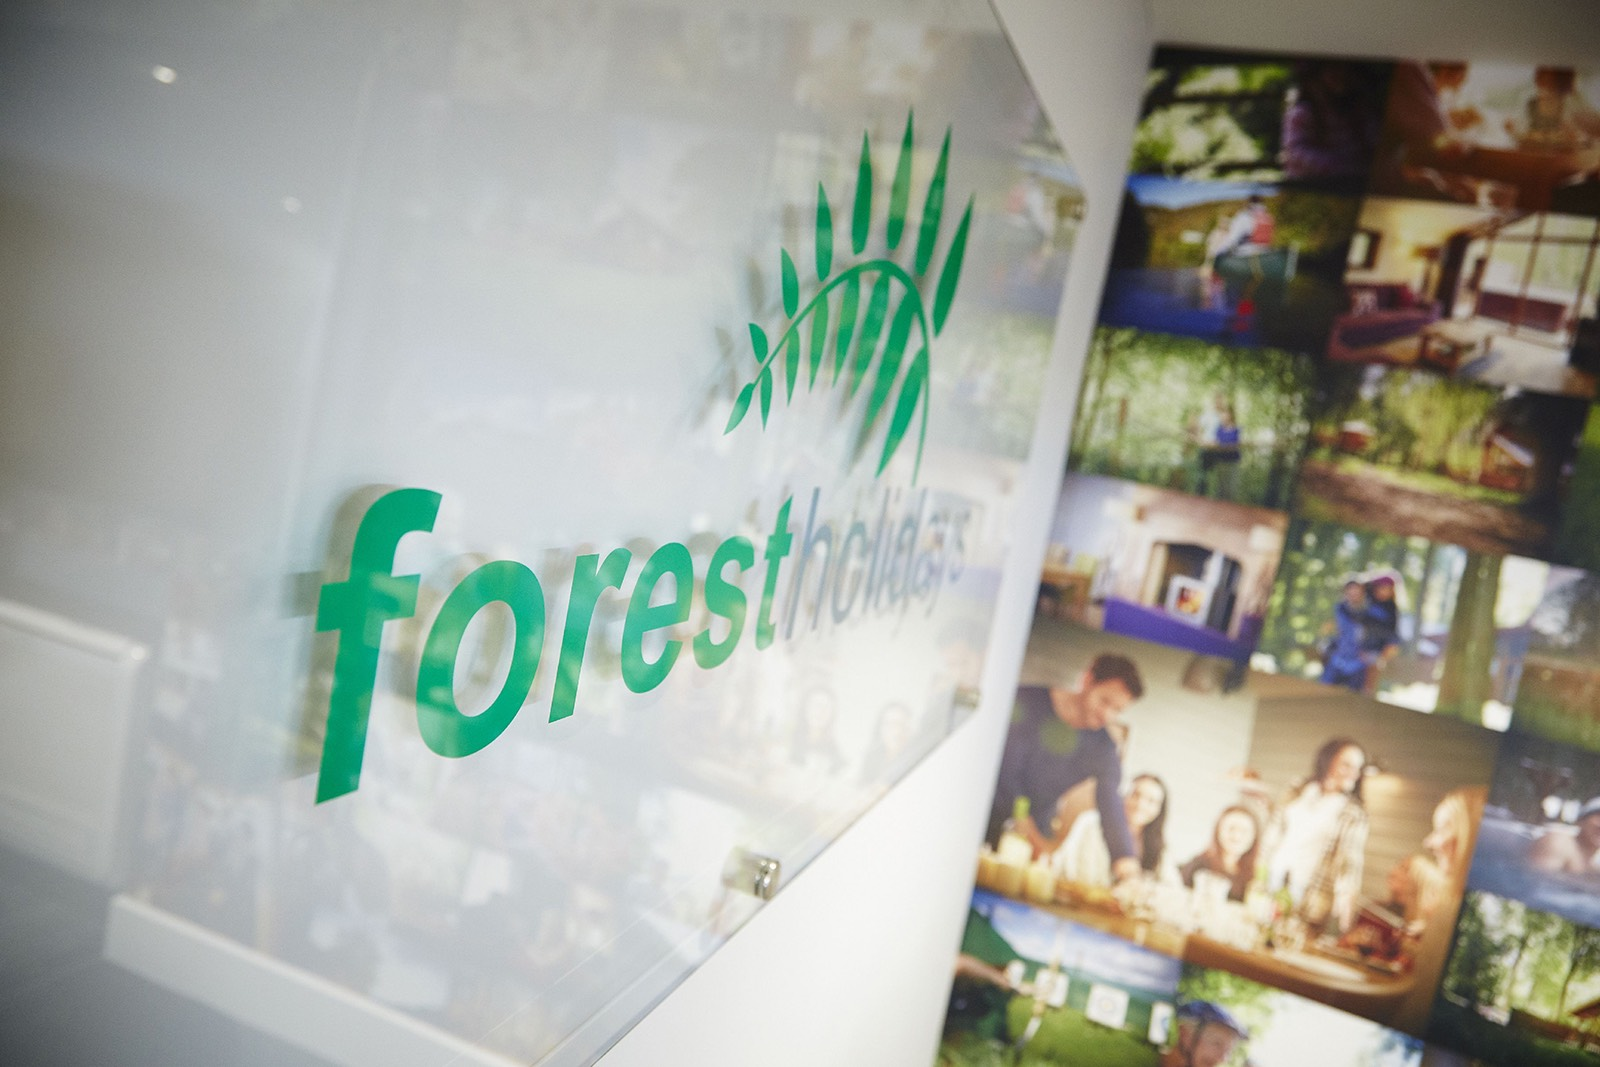 forestholidays-office-3